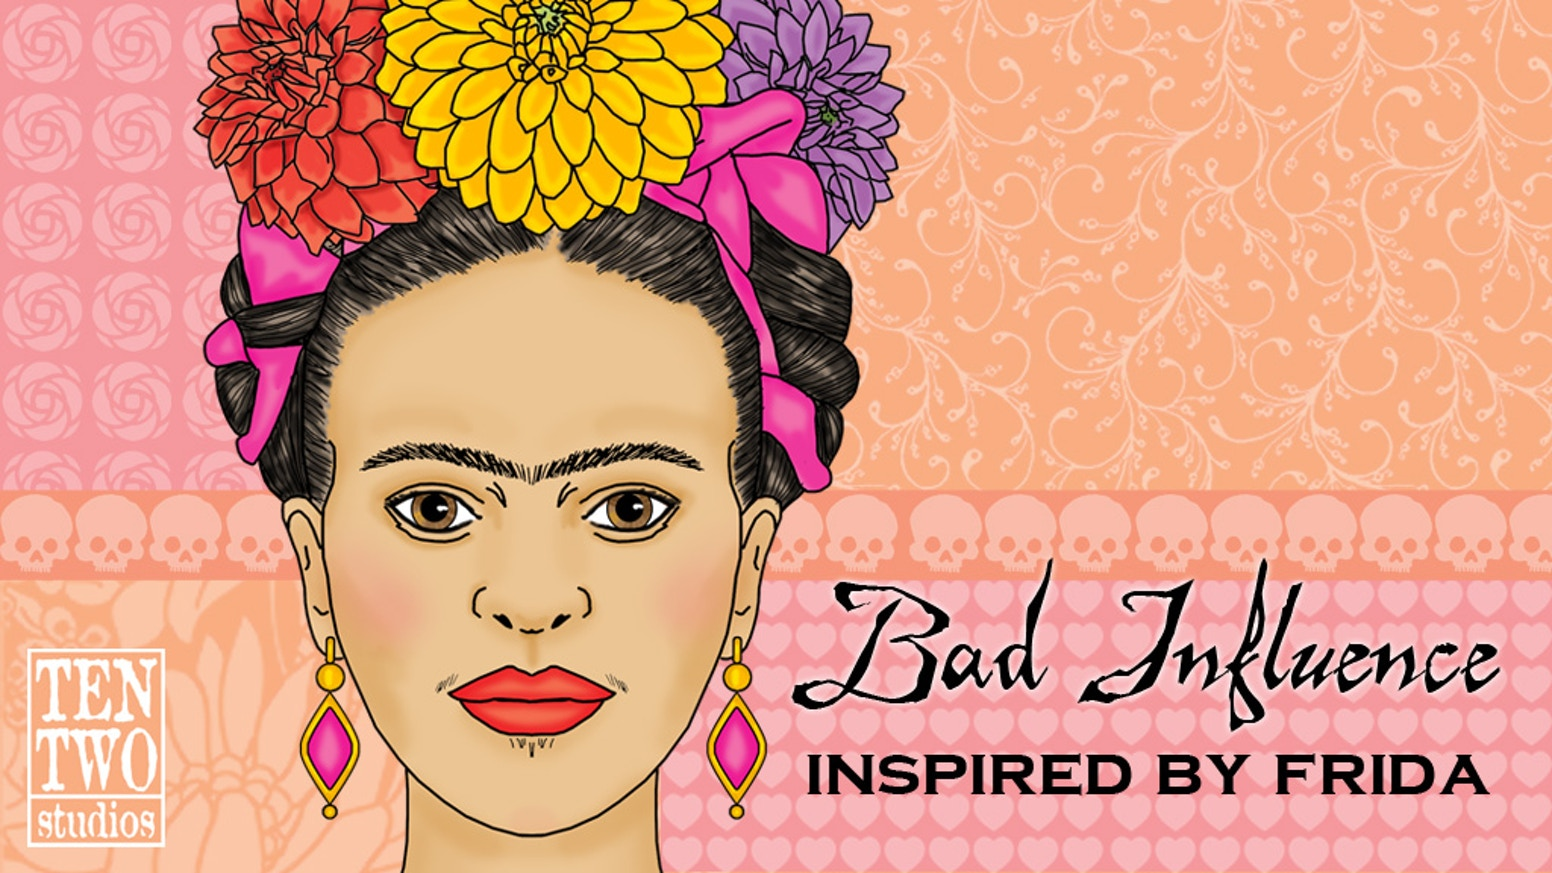 It's time for a new issue of my randomly published 'zine, Bad Influence. Everything in this issue will be inspired by Frida Kahlo!